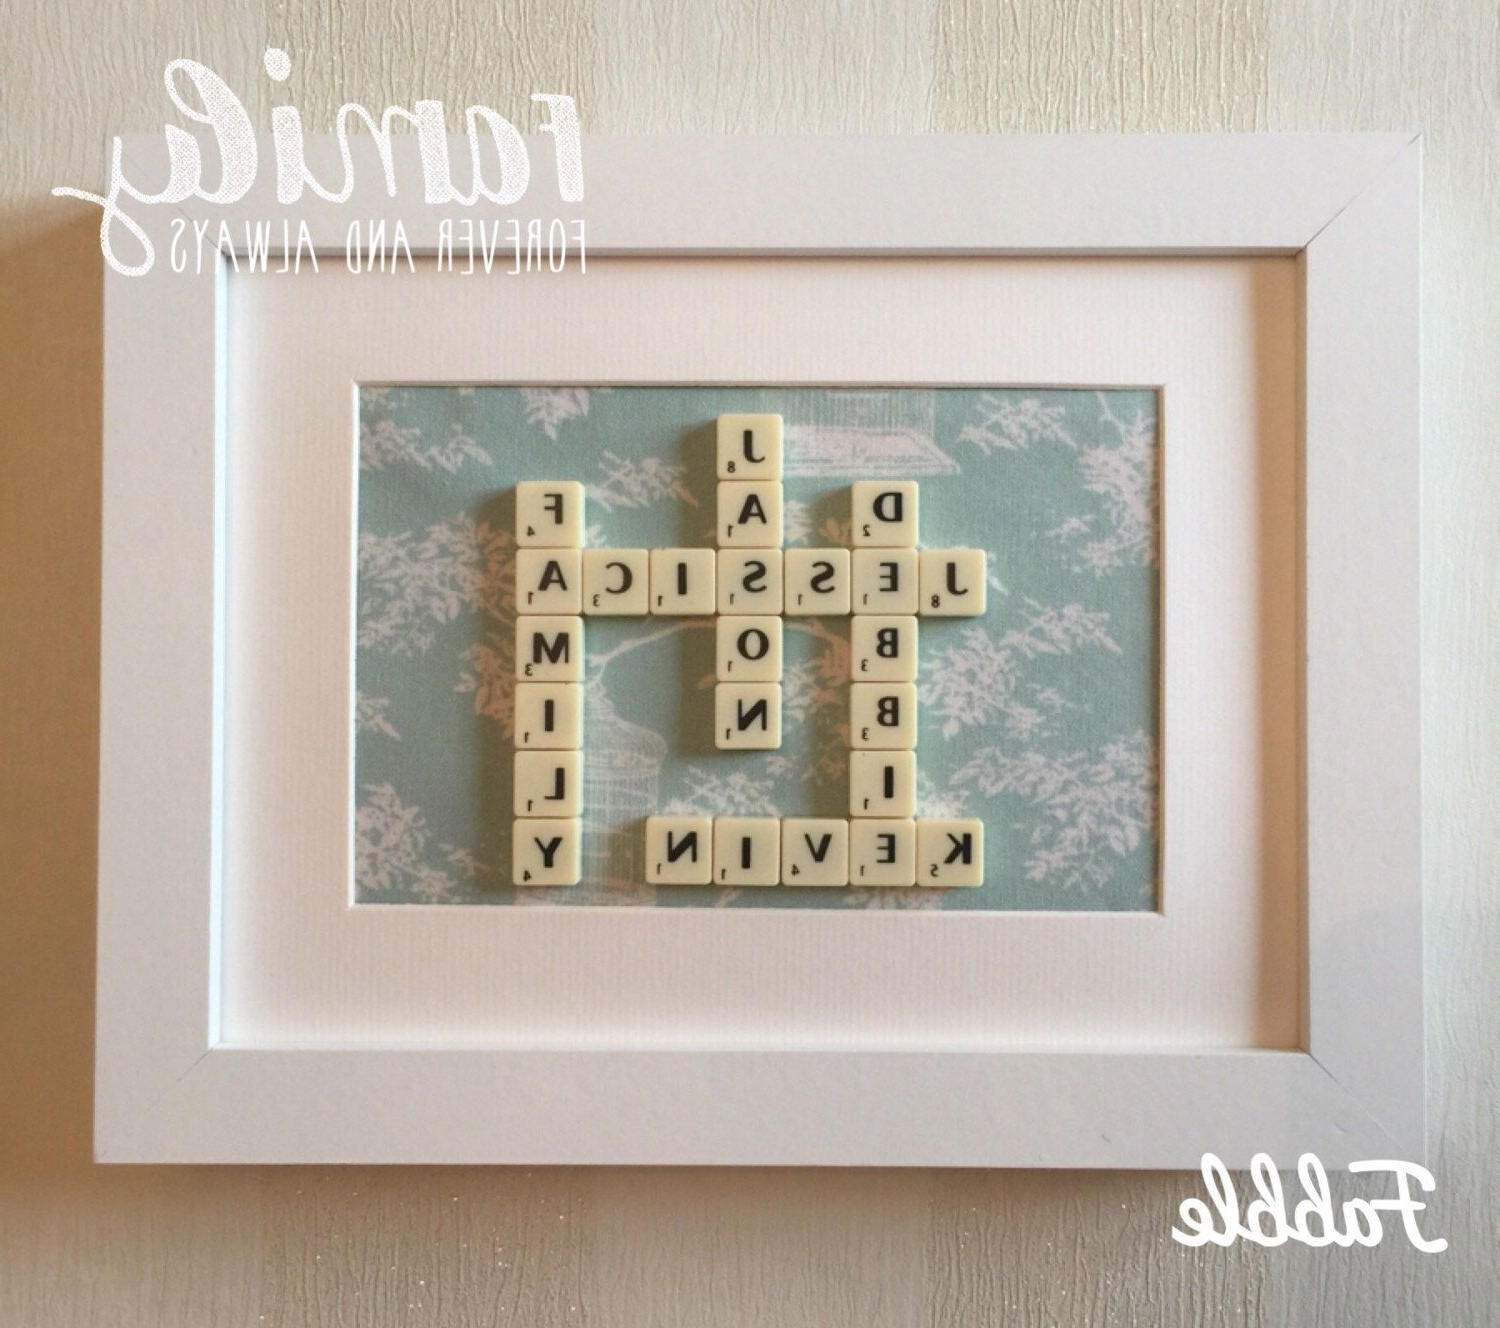 Well Known Scrabble Tile Wall Decor – Scrabble Tile Wall Decor Gift For Personalized Fabric Wall Art (View 15 of 15)